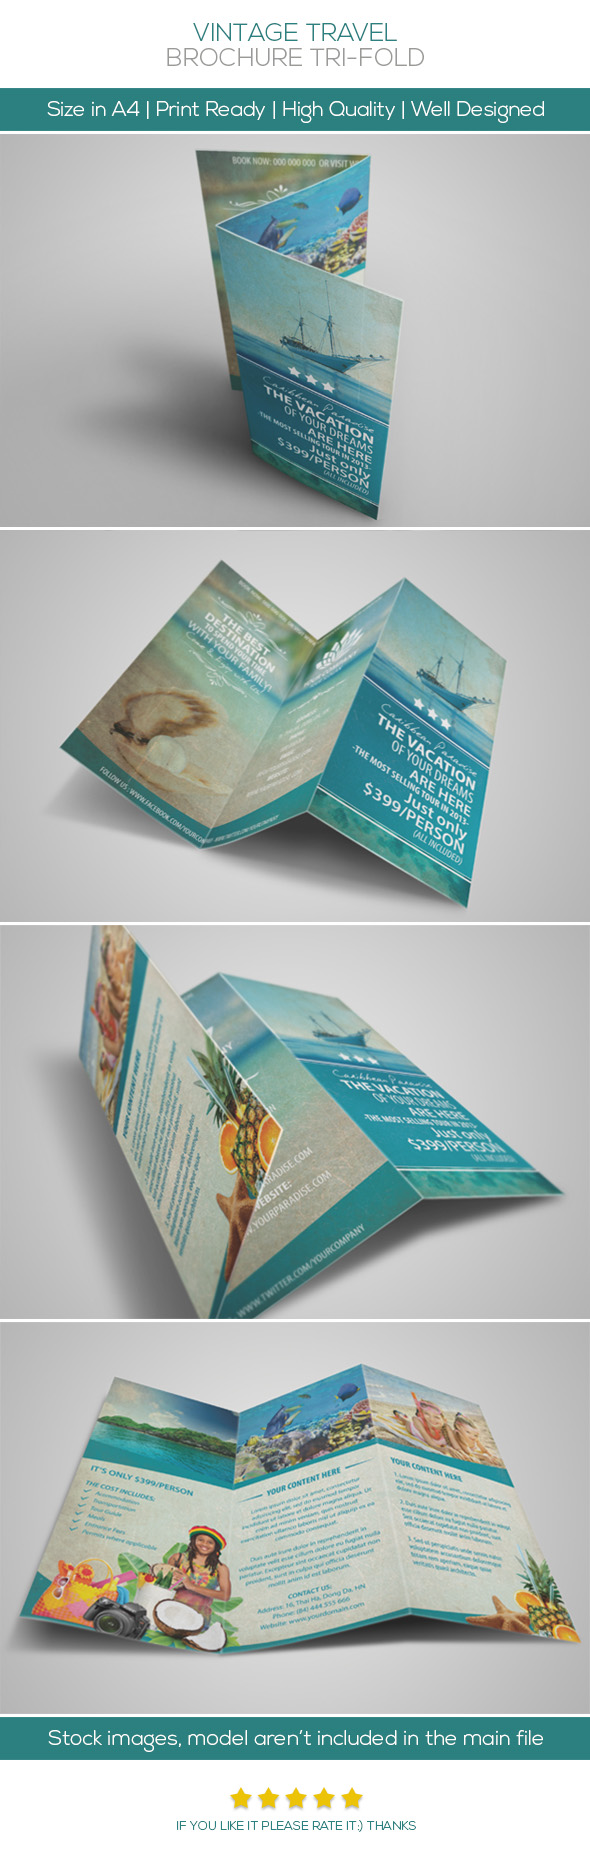 This travel brochure is eye catching and looks like its easy to read